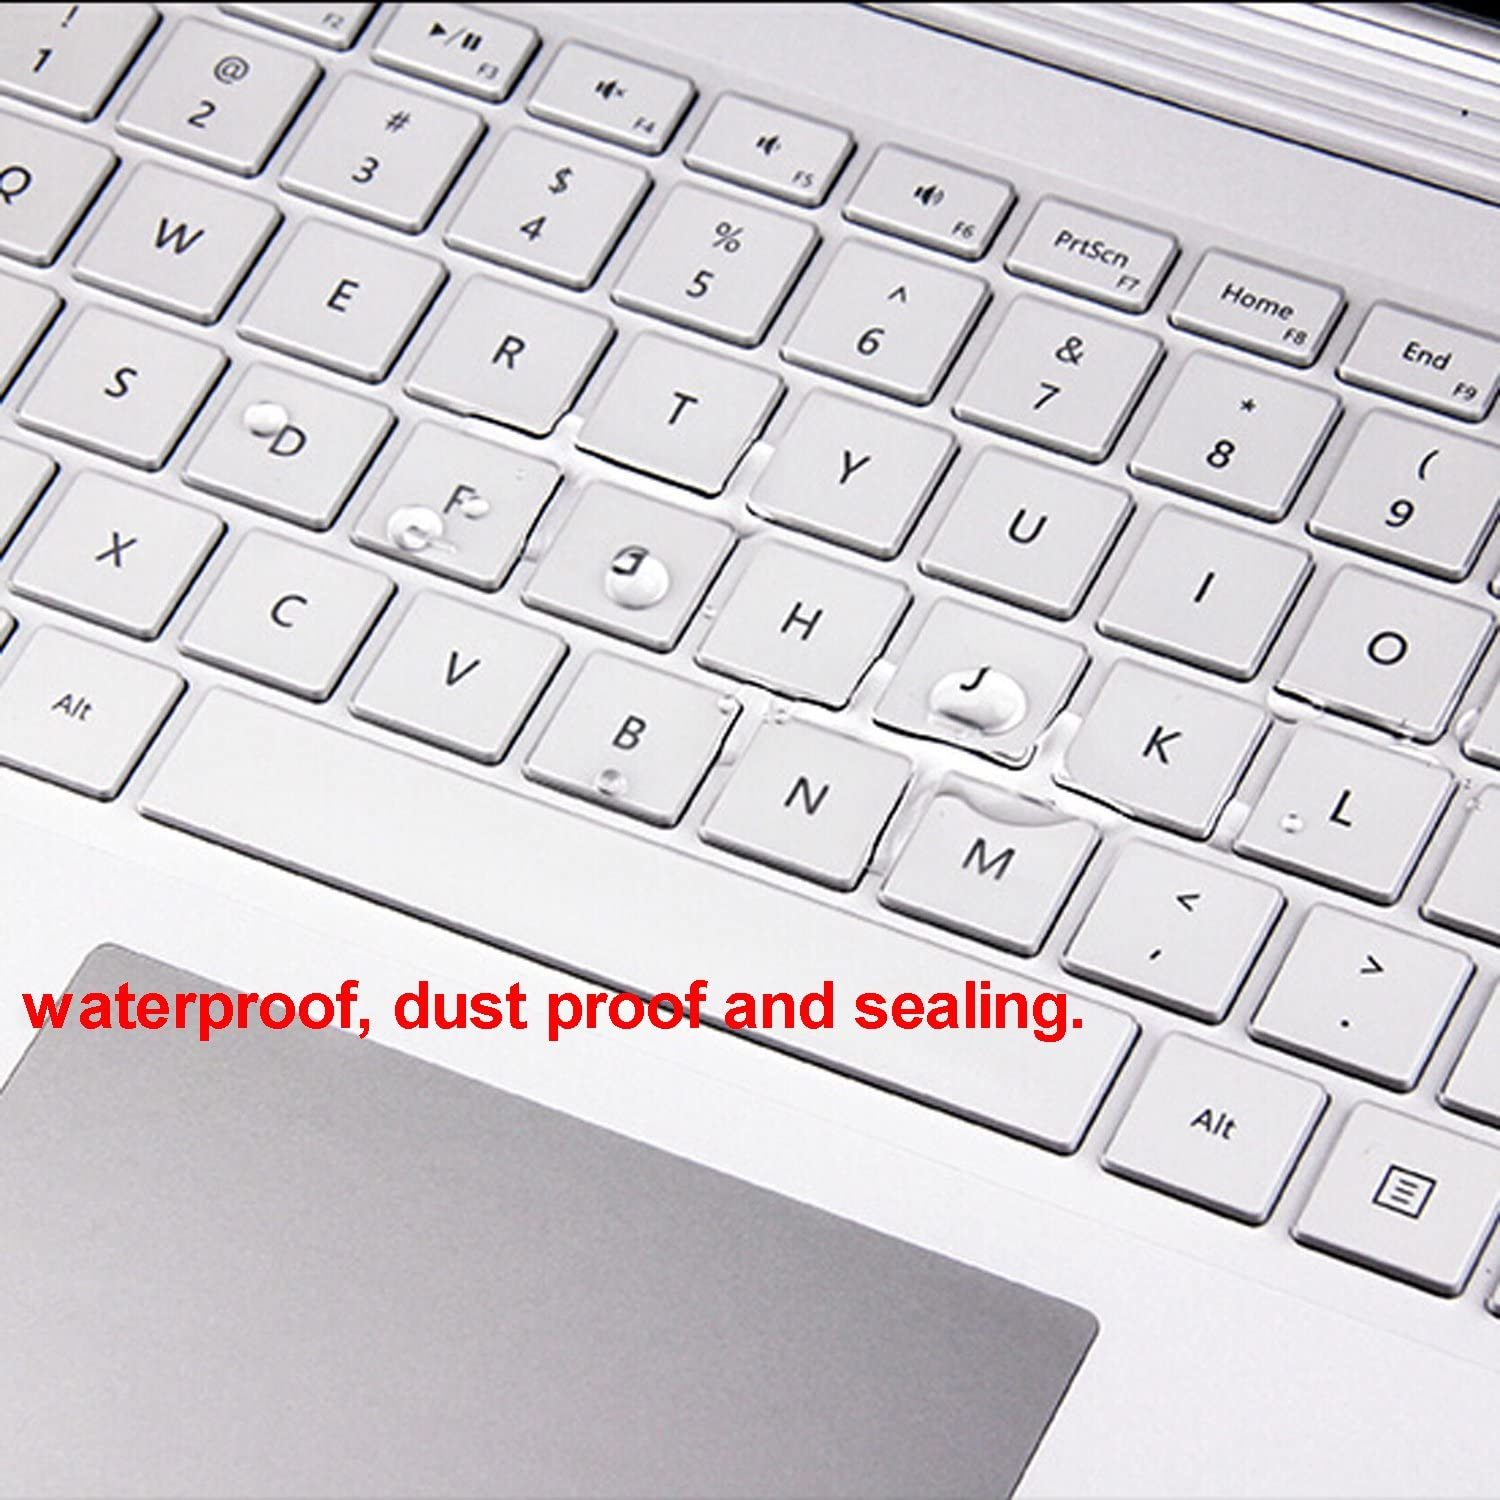 Cosmos Clear Color See Through TPU Material Keyboard Cover Skin Protector for Microsoft Surface Book